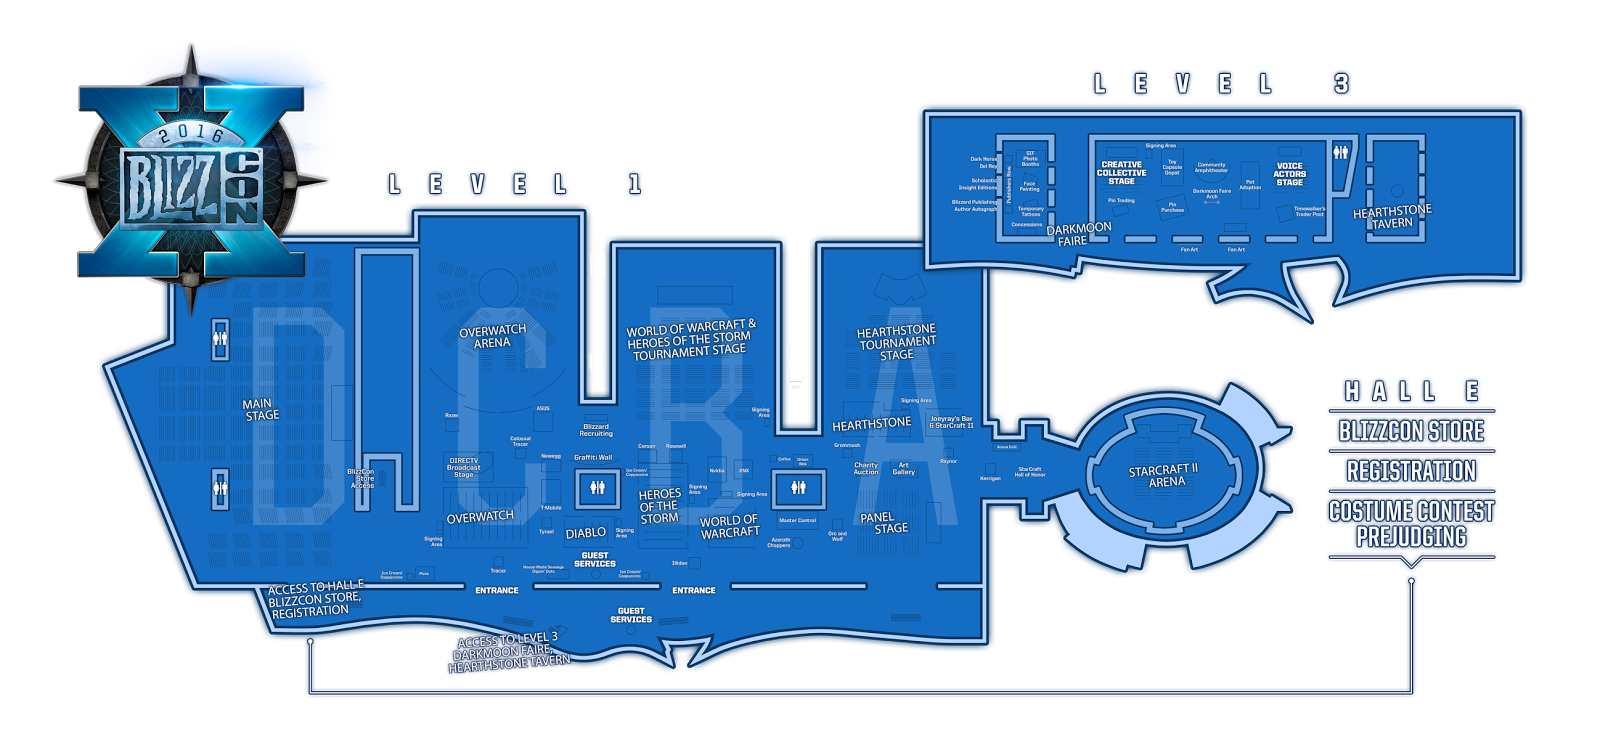 one of the complaints leading up to blizzcon 2015 was how small the diablo area was where it was shoved off into the back corner and represented as being